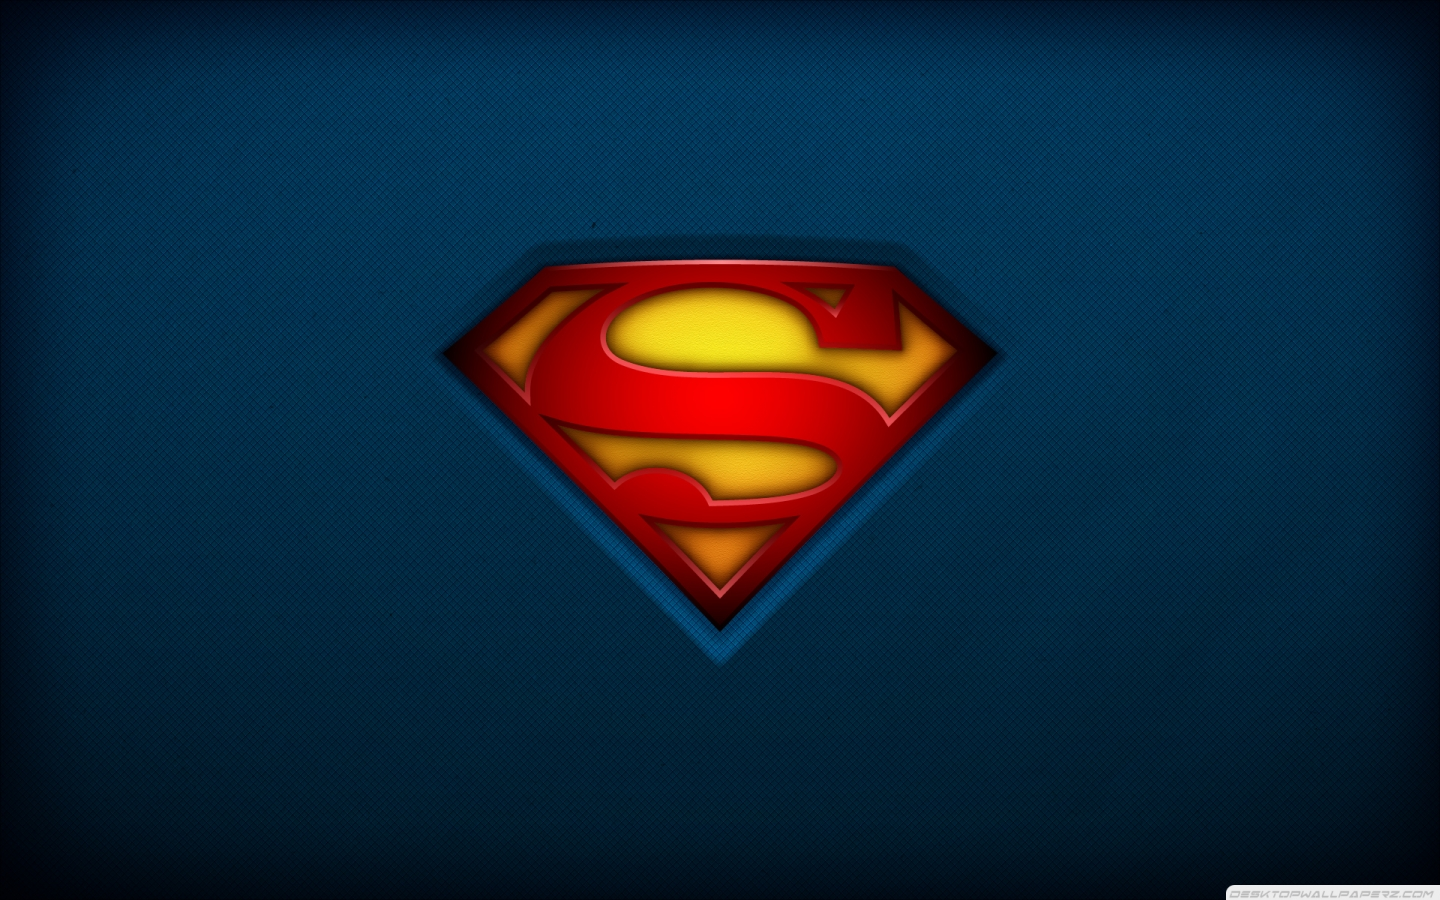 Related Pictures background desktops logos superhero logo flash hd 1440x900